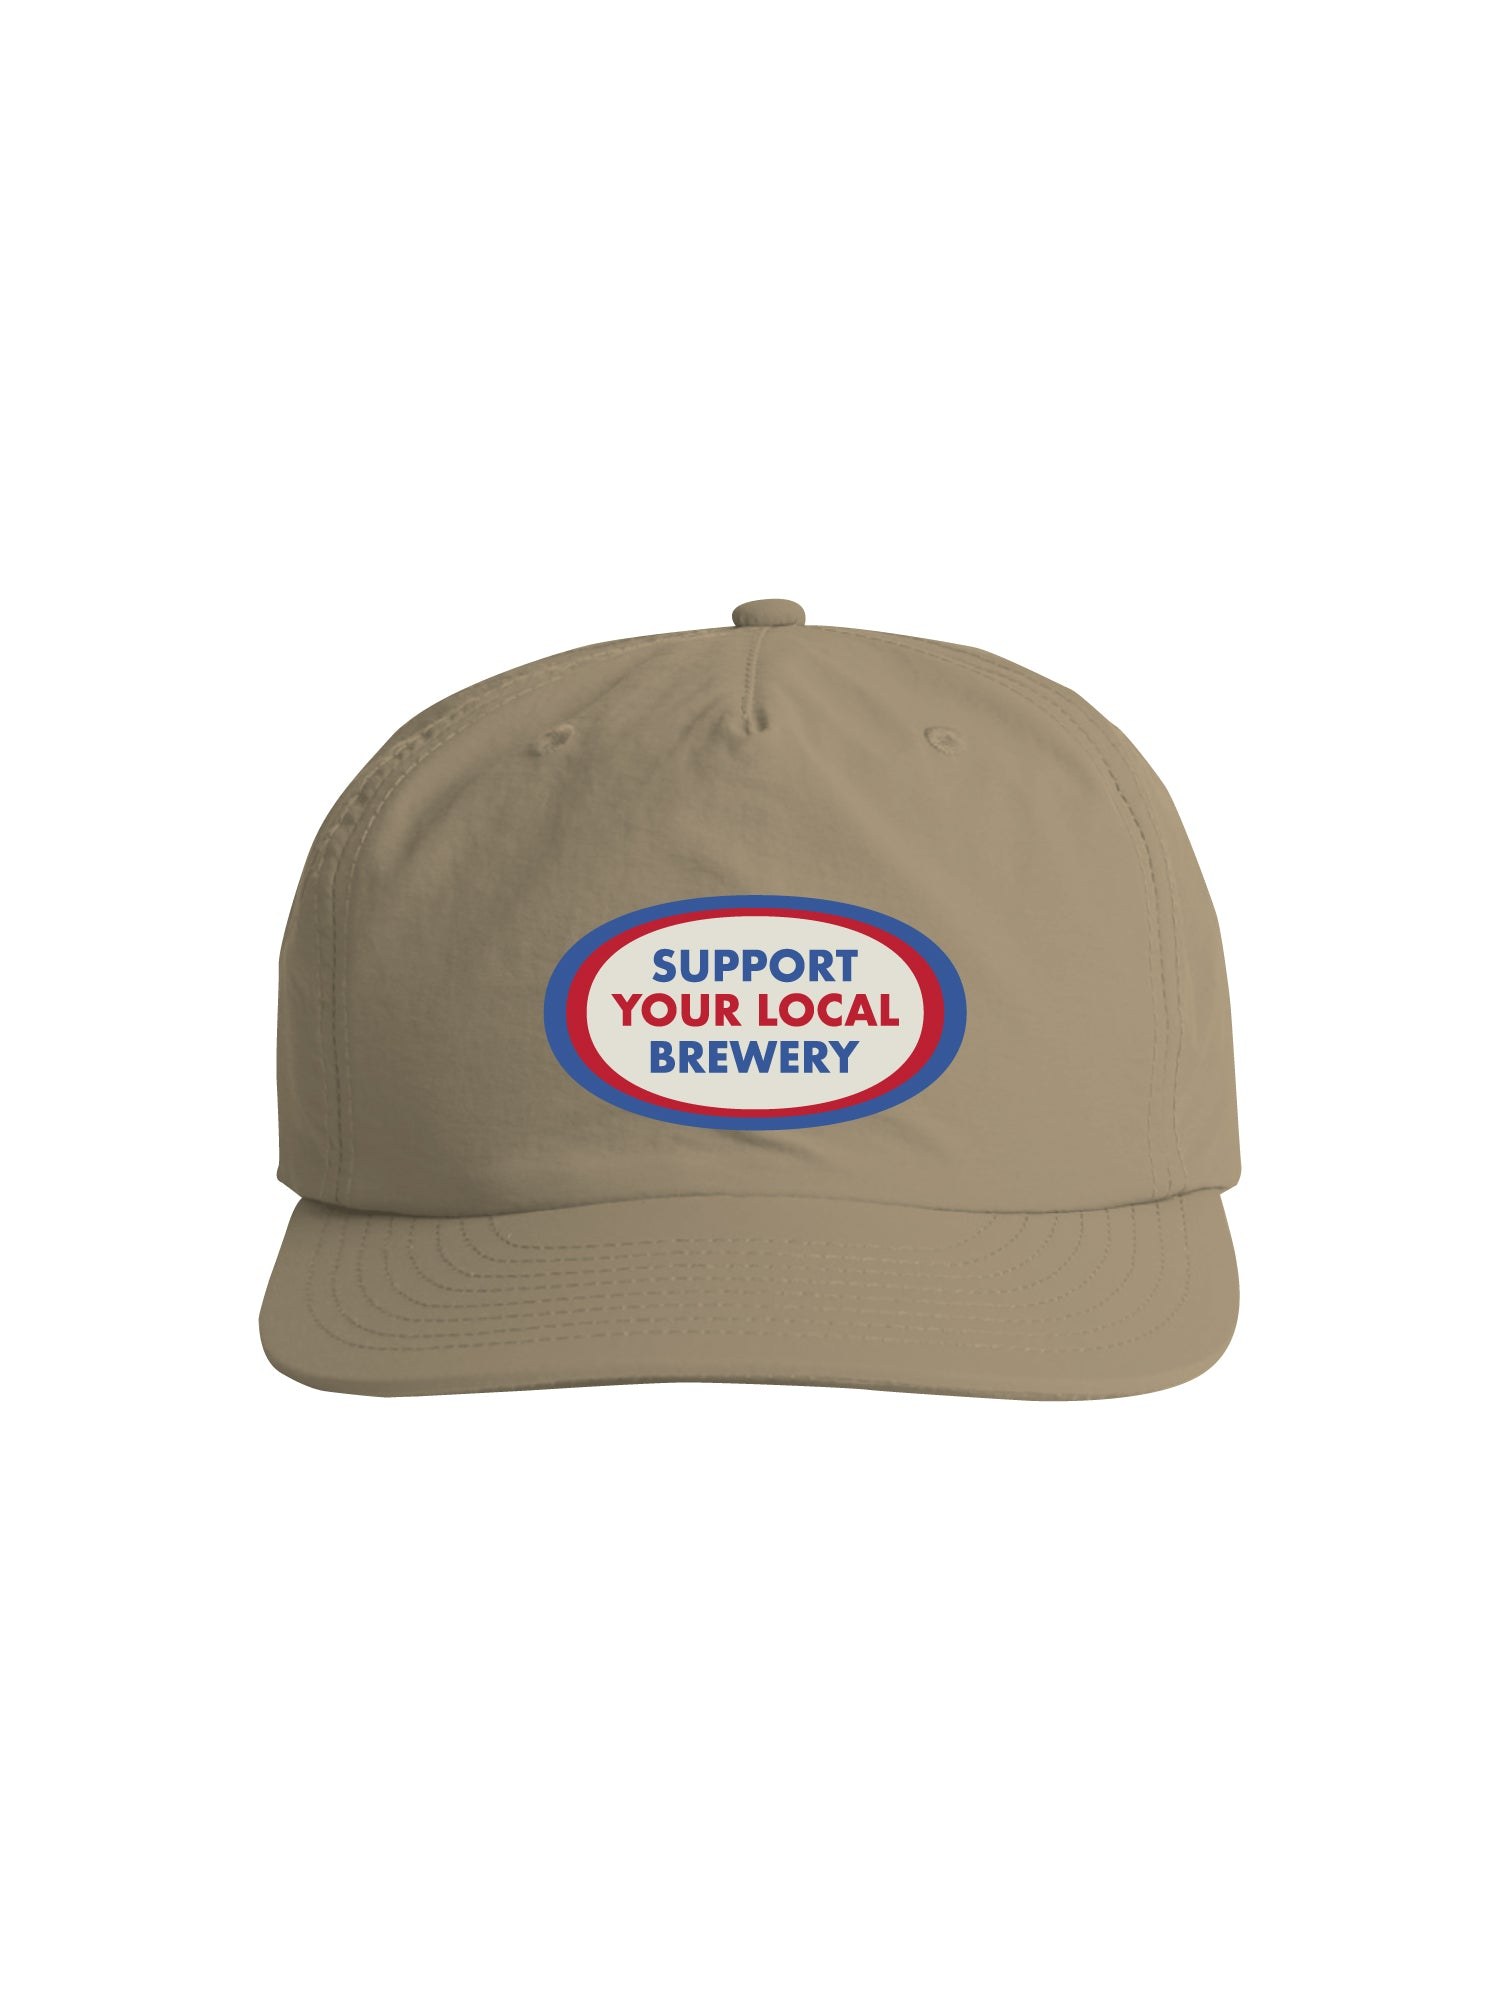 SUPPORT YOUR LOCAL BREWERY SURF CAP - KHAKI - Tankfarm & Co.